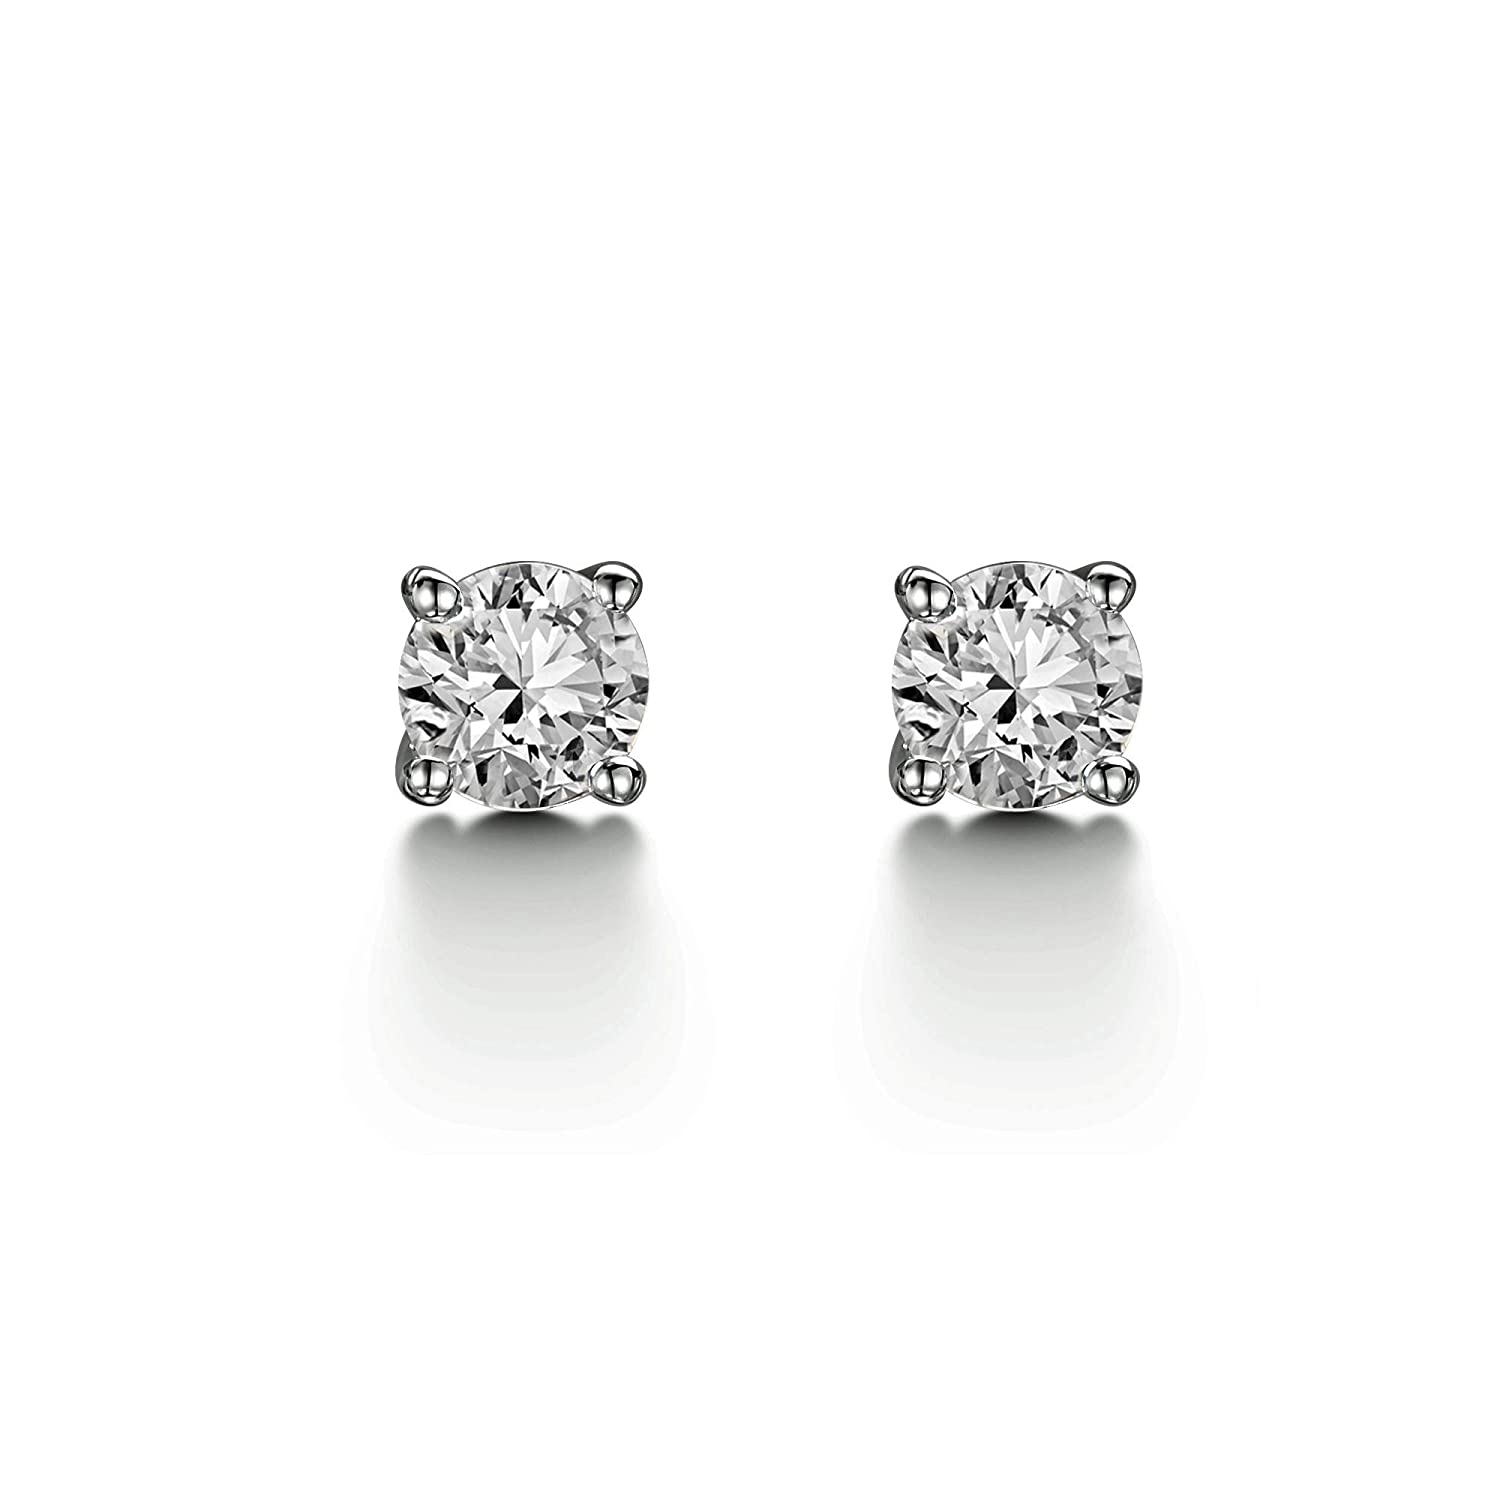 1 4 Carat Made in US IGI Certified Diamond Stud Earring For Women Lab Grown  Diamond Earrings 14K F-G Quality Earrings Gold White Real Diamond Stud  Earrings ... f212917ec